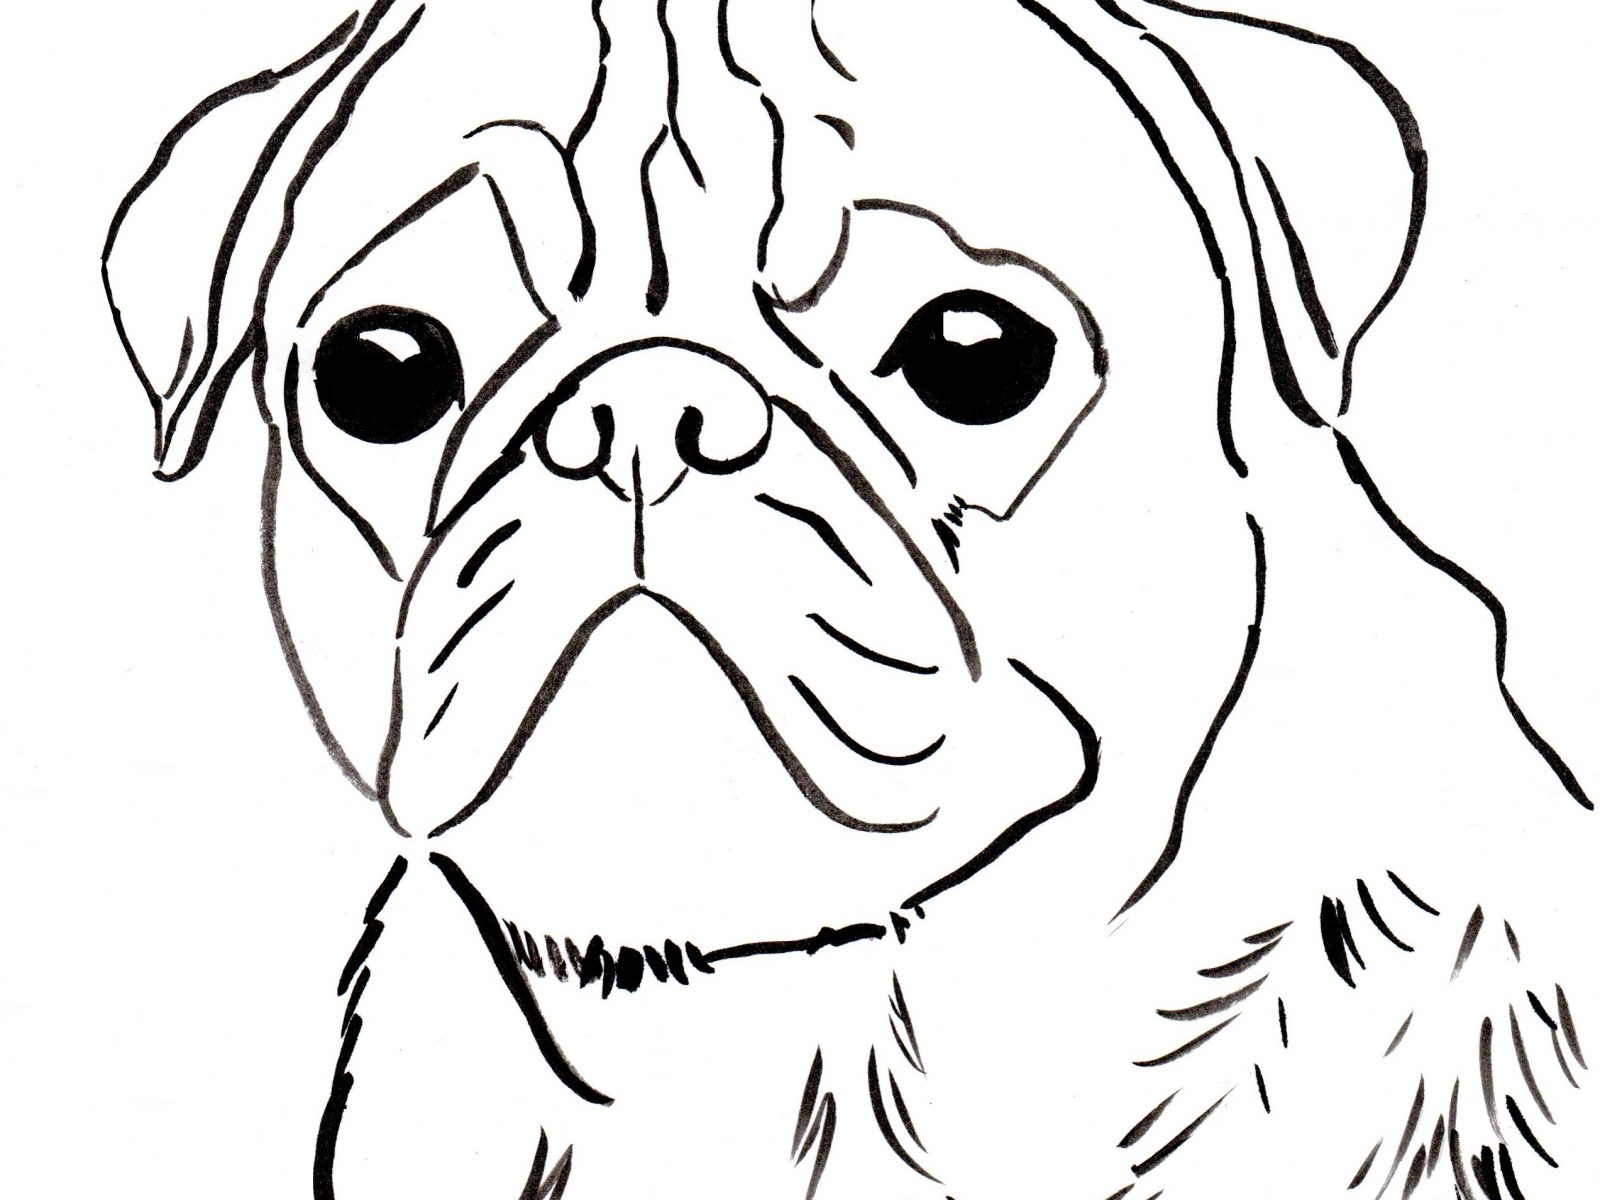 1600x1200 Marvelous Realistic Pug Dog Coloring Pages Free Printable Animals